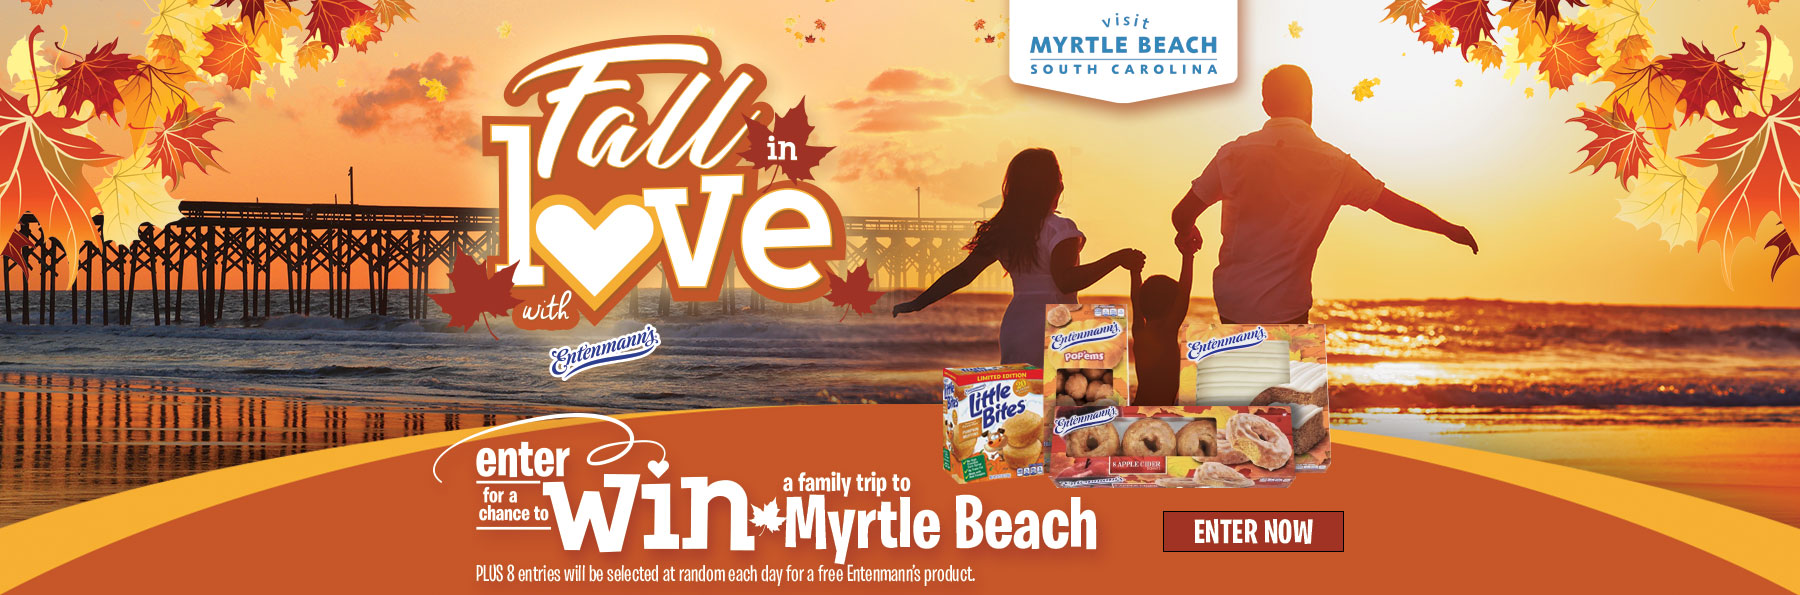 Win a Family Trip to Myrtle Beach